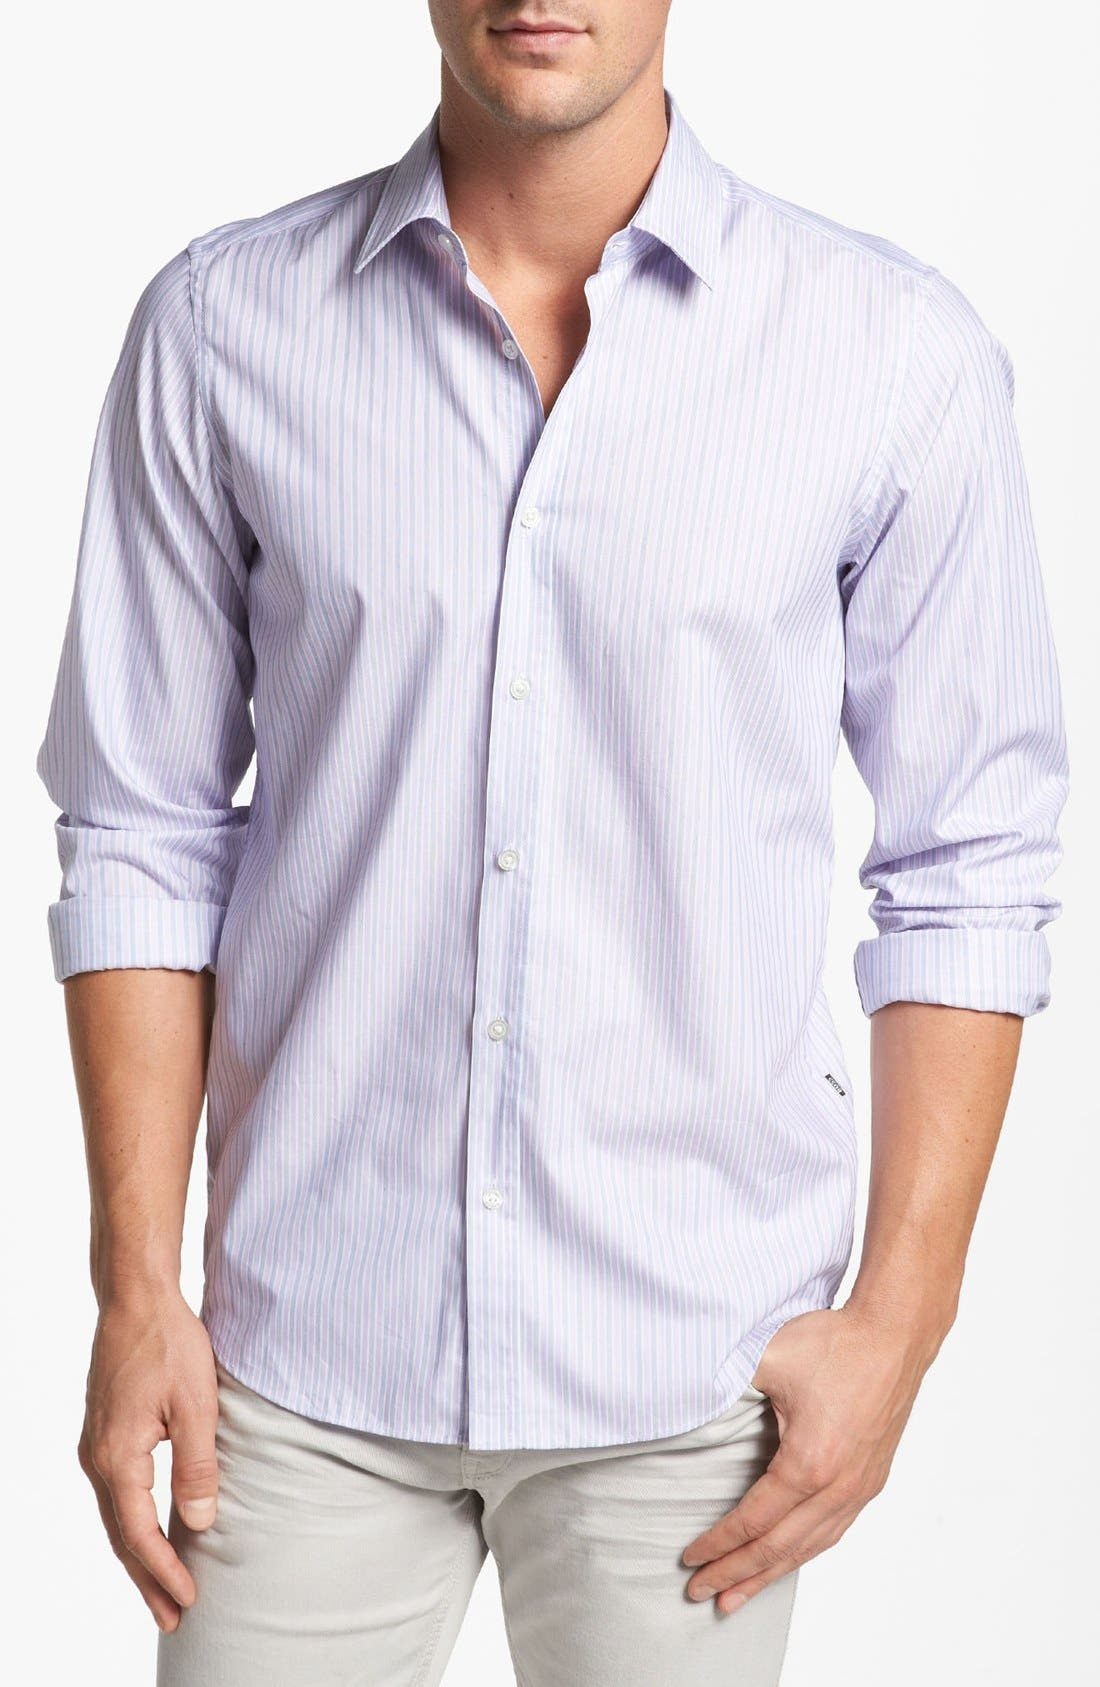 Alternate Image 1 Selected - BOSS HUGO BOSS 'Lucas' Regular Fit Textured Sport Shirt